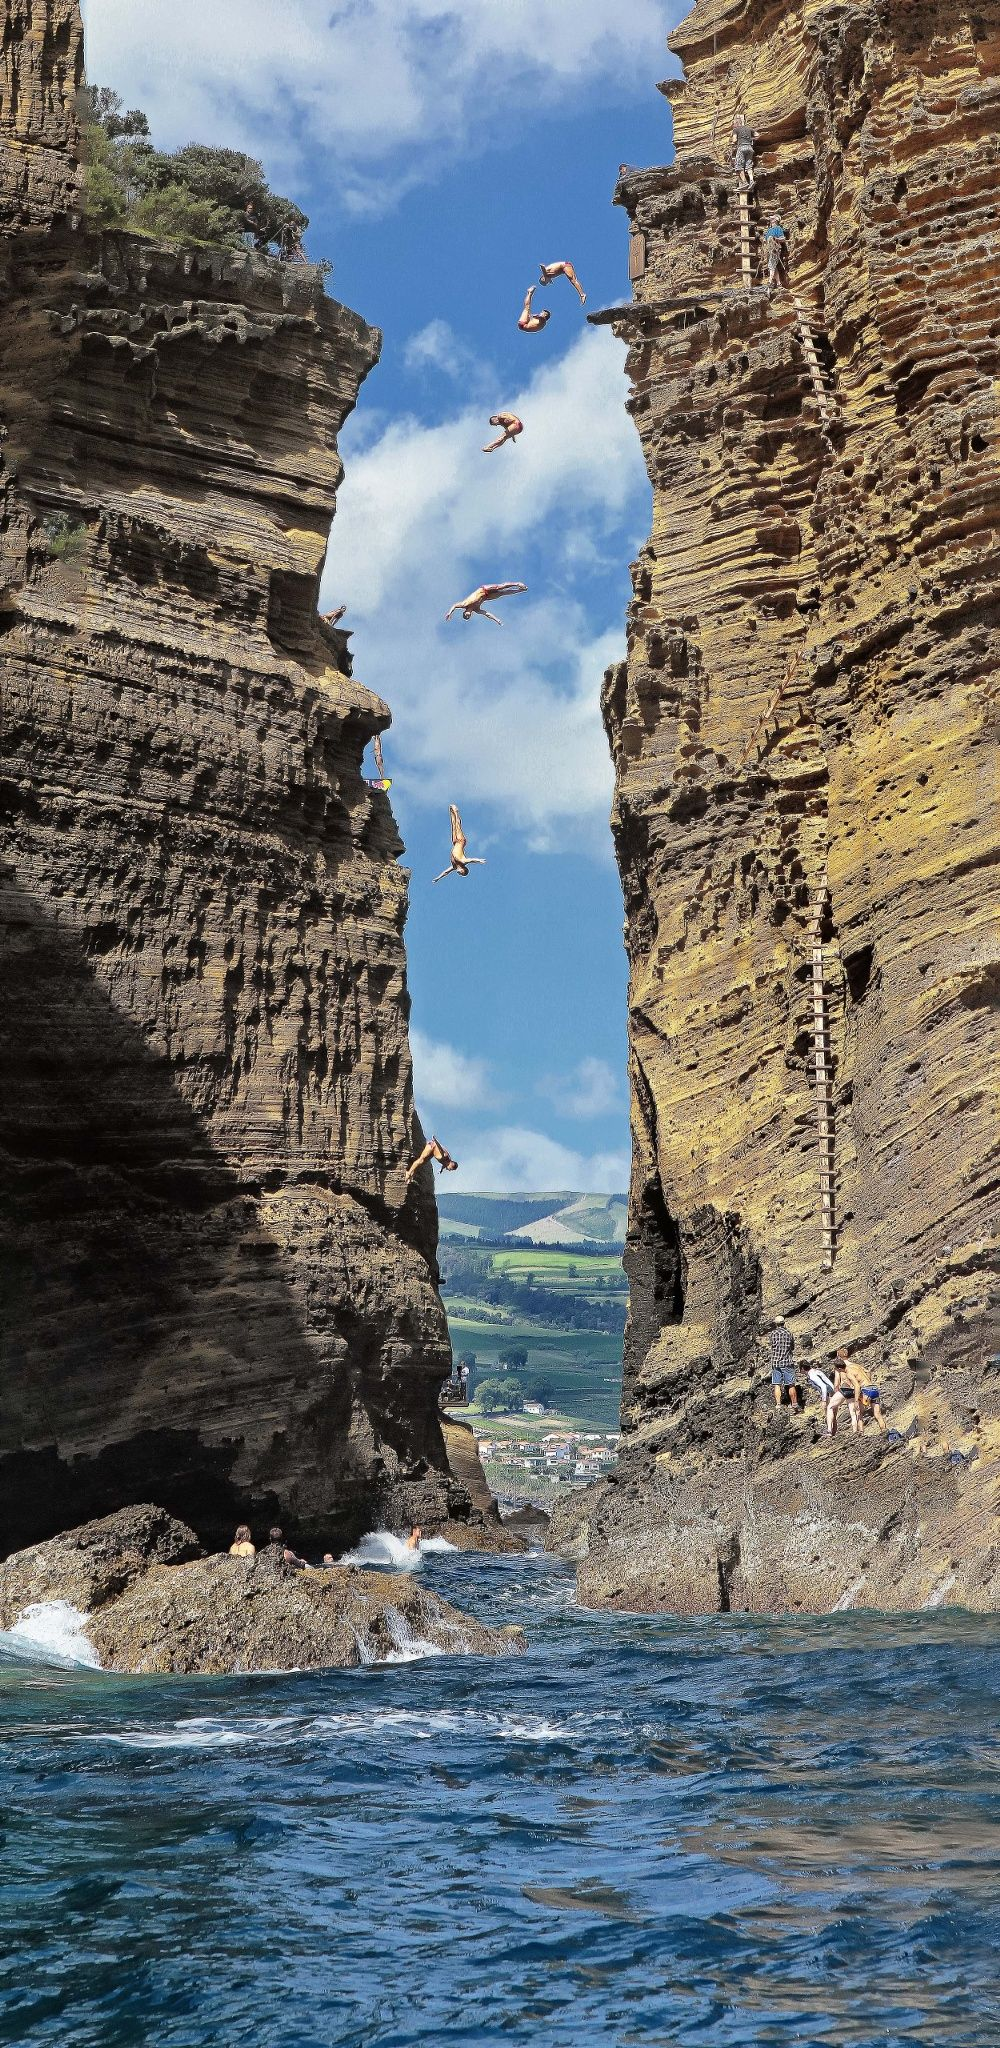 red bull cliff diving 2012 azores by Pedro  Silva on 500px